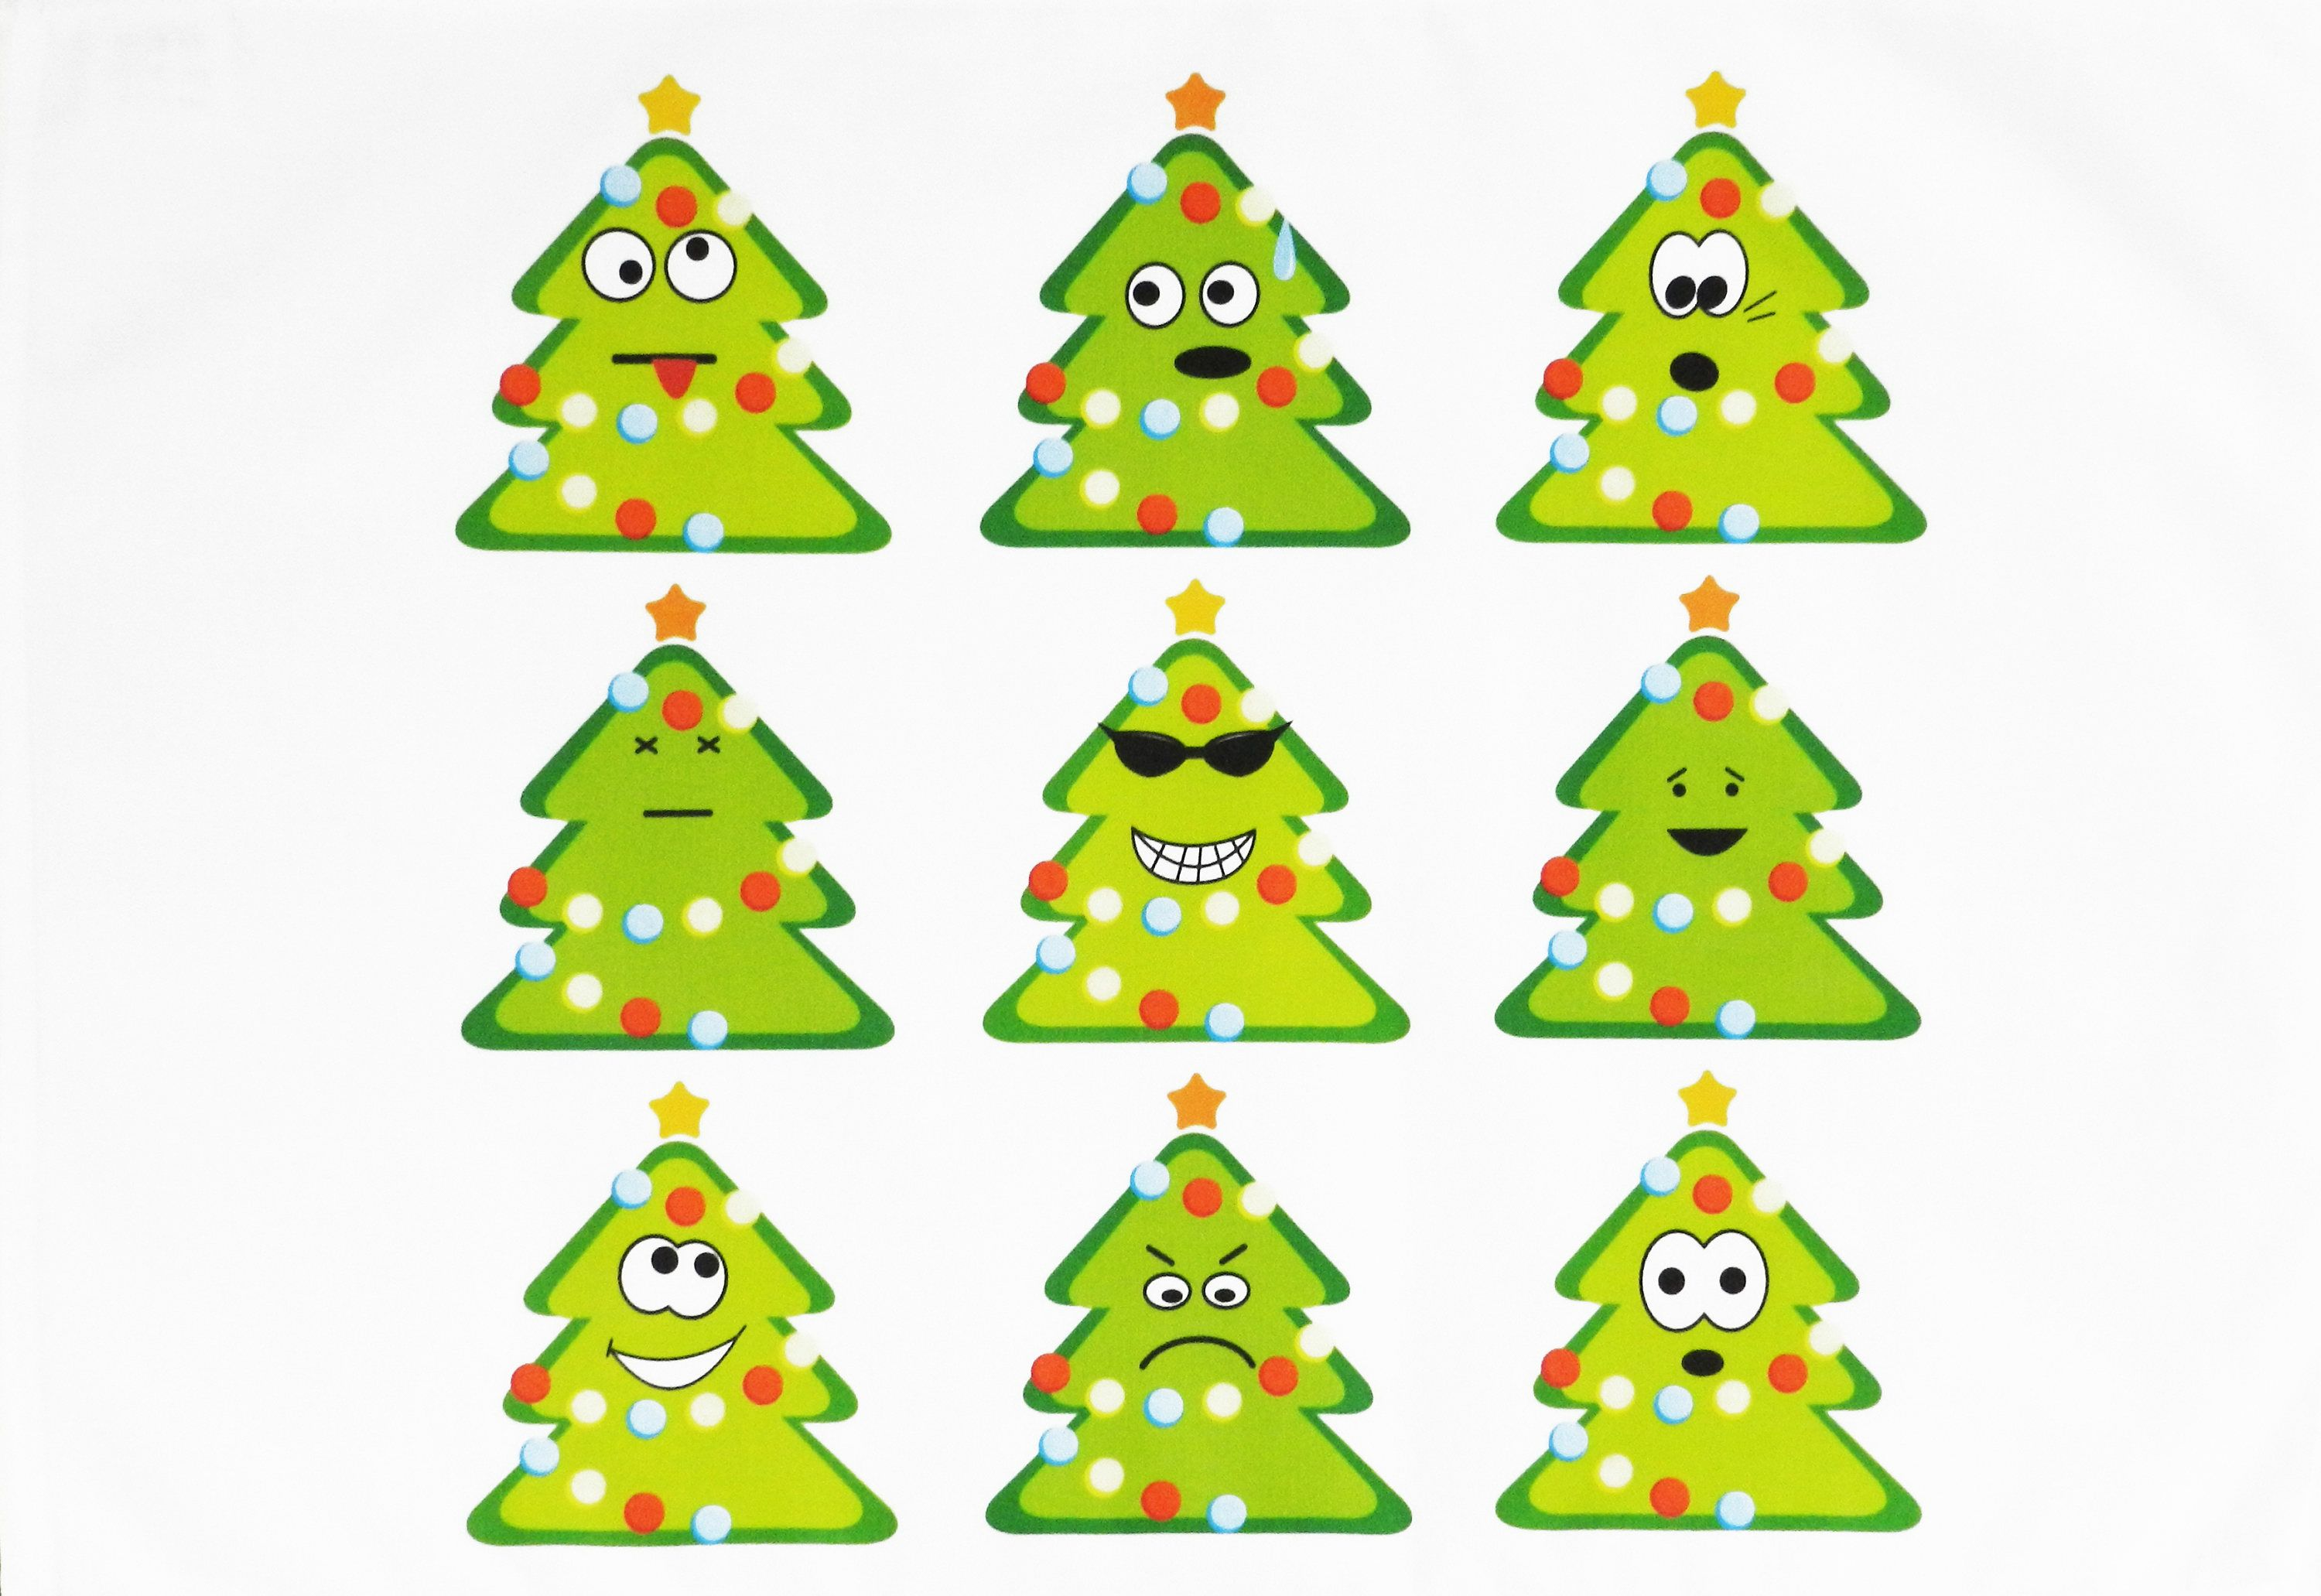 The Festive Emoji Christmas Trees Large Cotton Tea Towel Emoji Christmas Emoji Christmas Tree Cotton Tea Towels